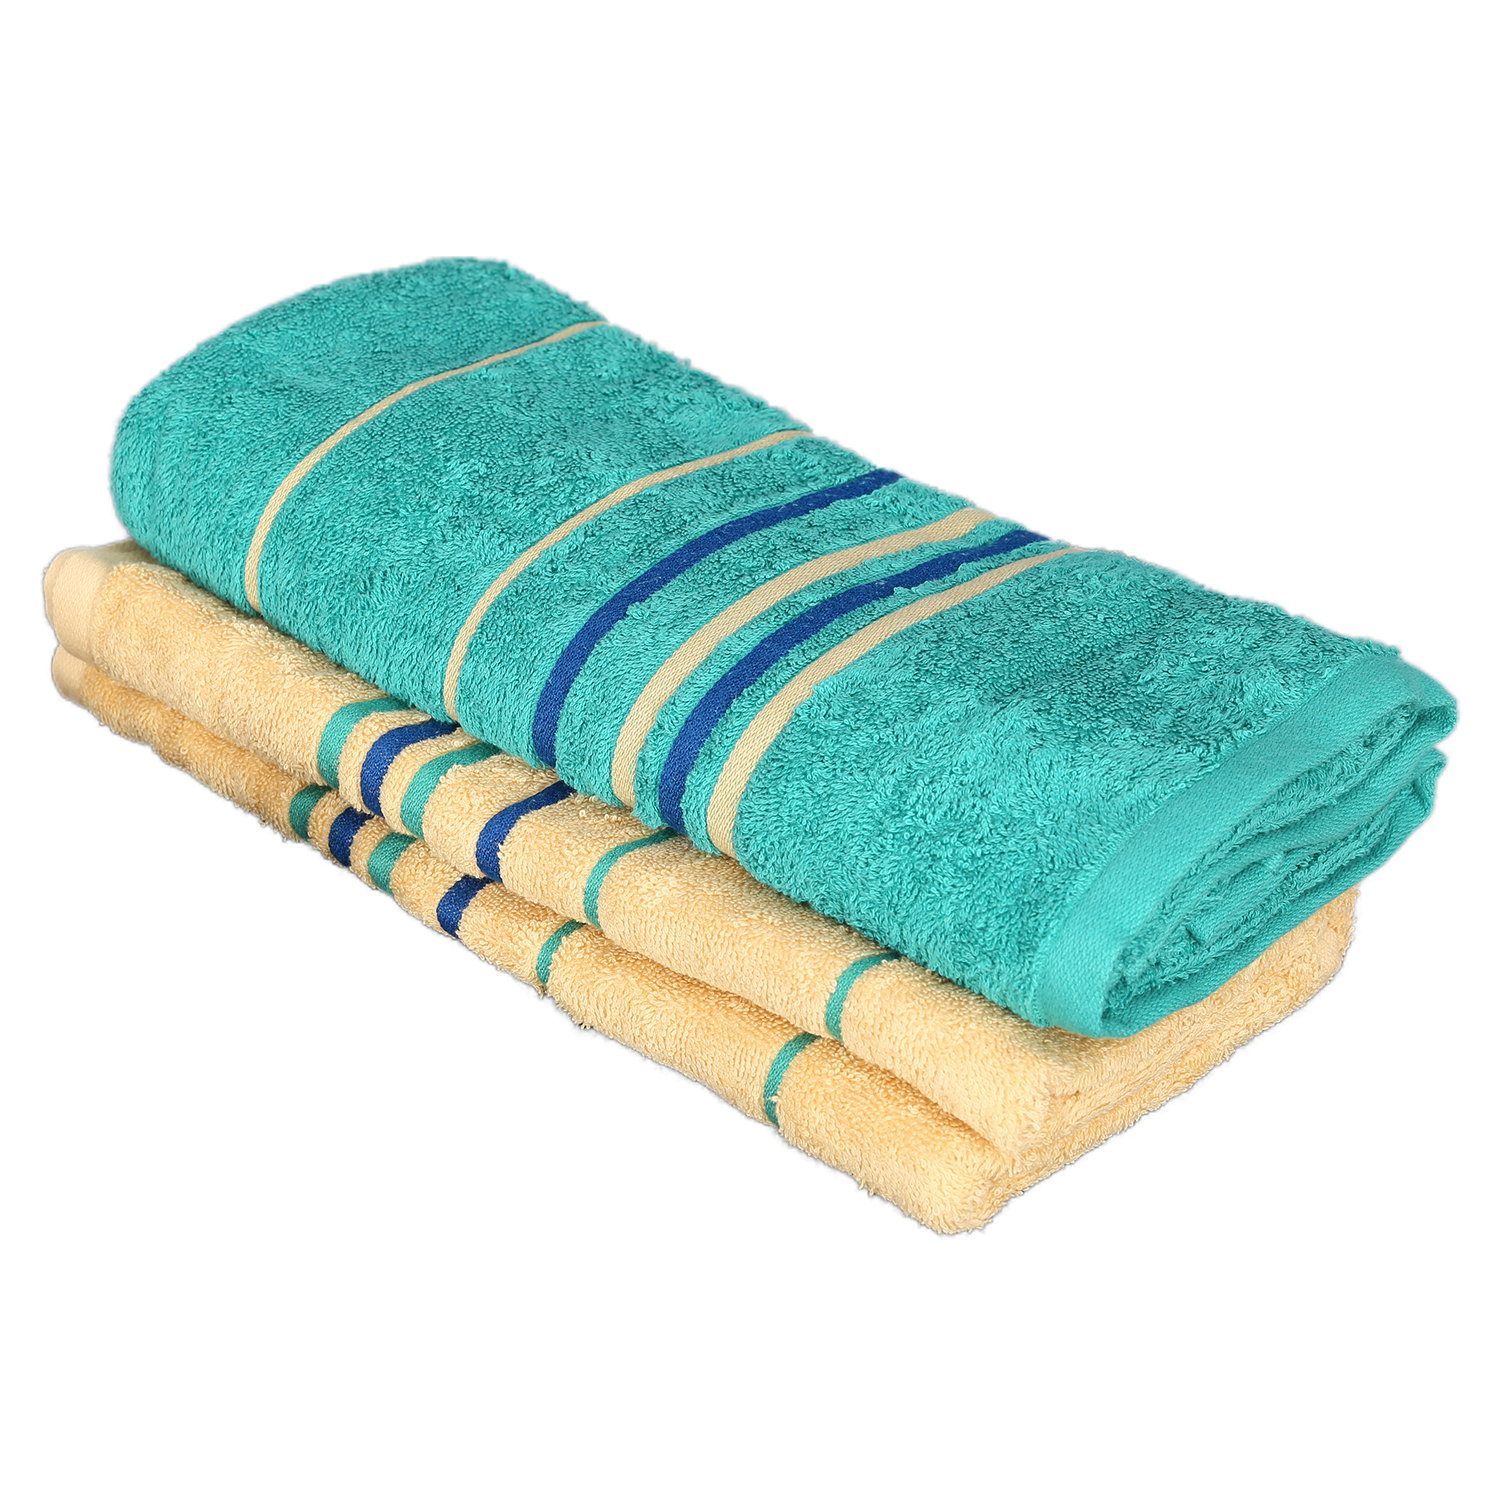 Emilia Bath Towel Butterscotch & Teal Carded Cotton Bath Towels in Butter Scotch & Teal Colour by Living Essence